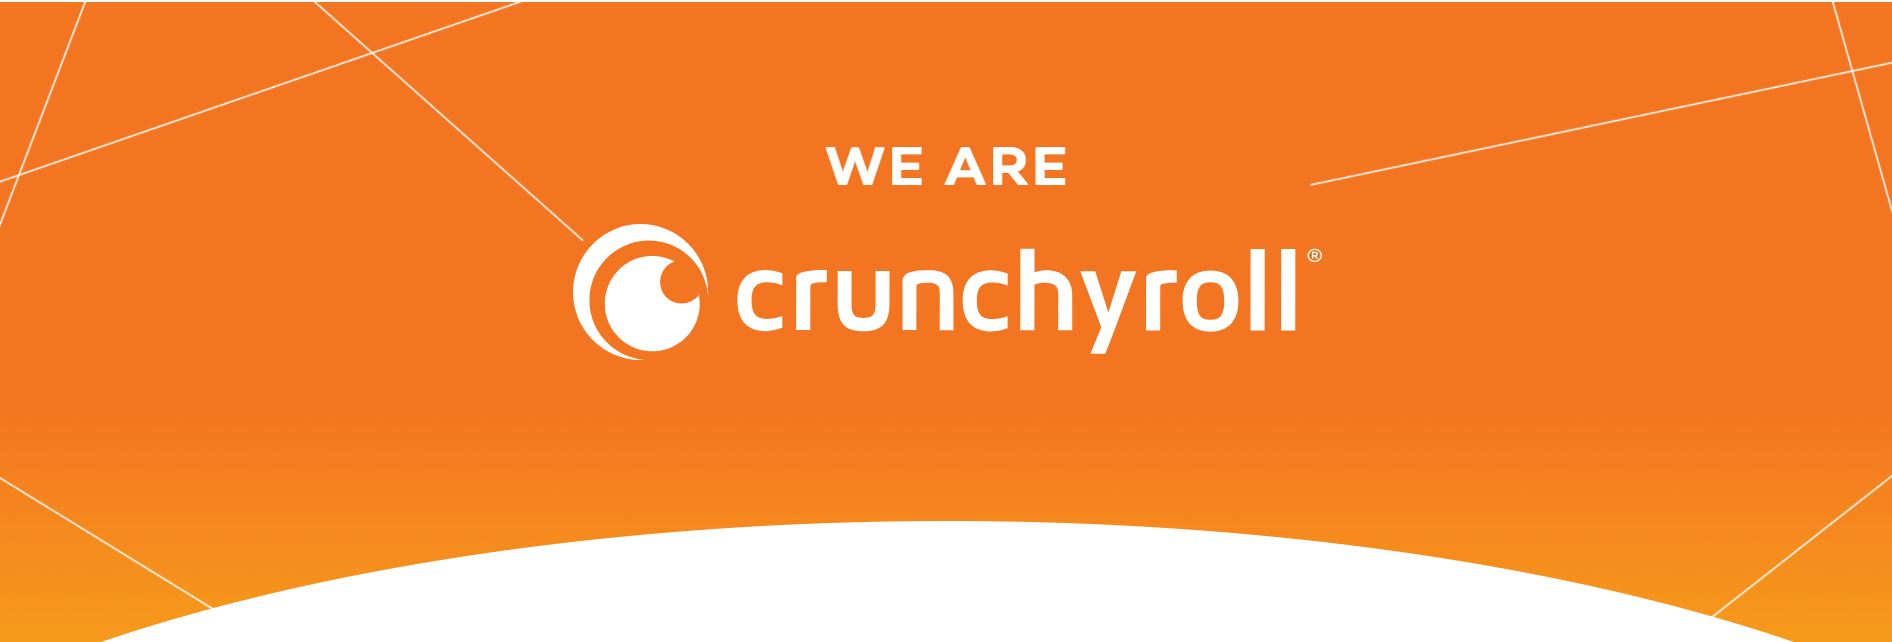 Crunchyroll about page